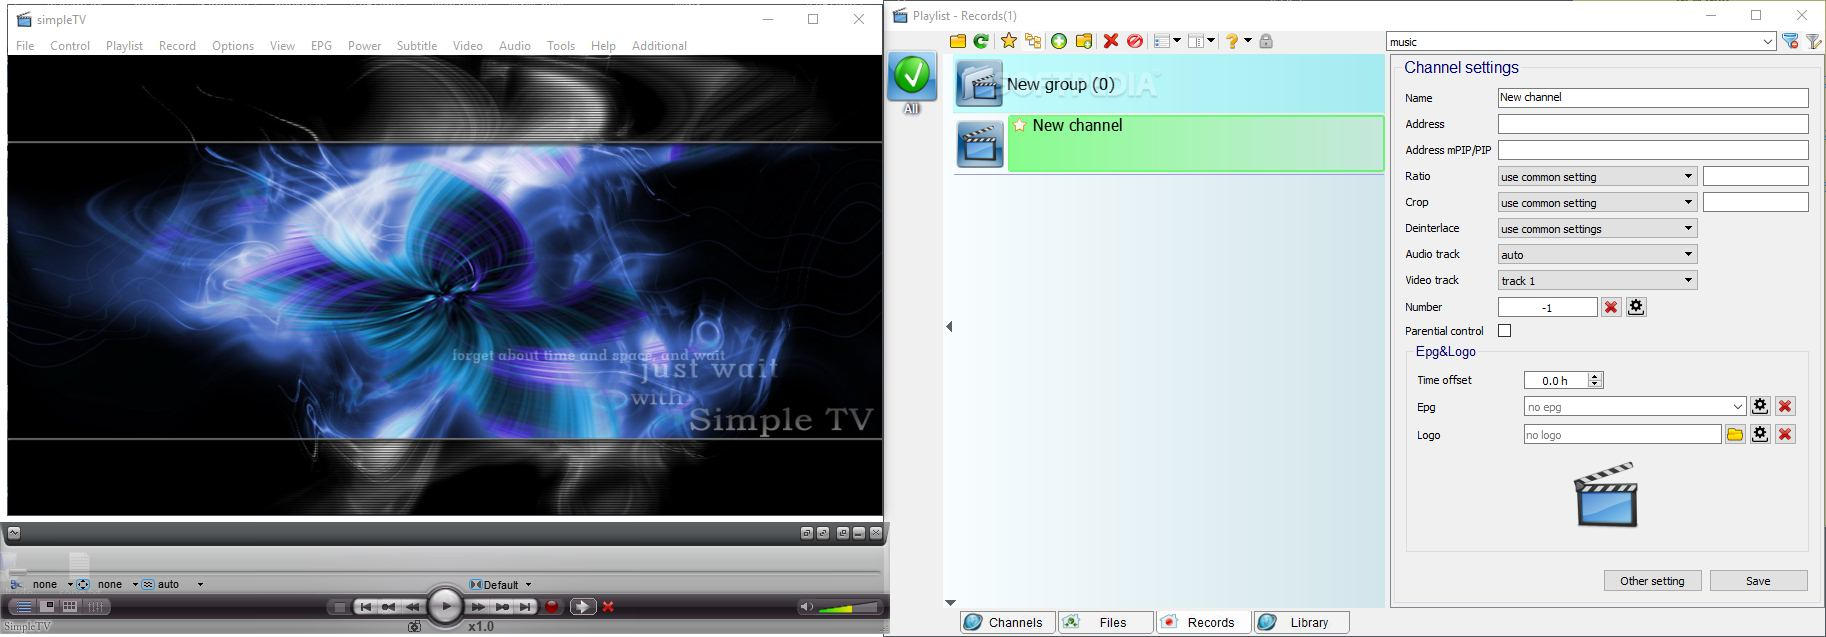 simple tv 0.4.6 gratuit